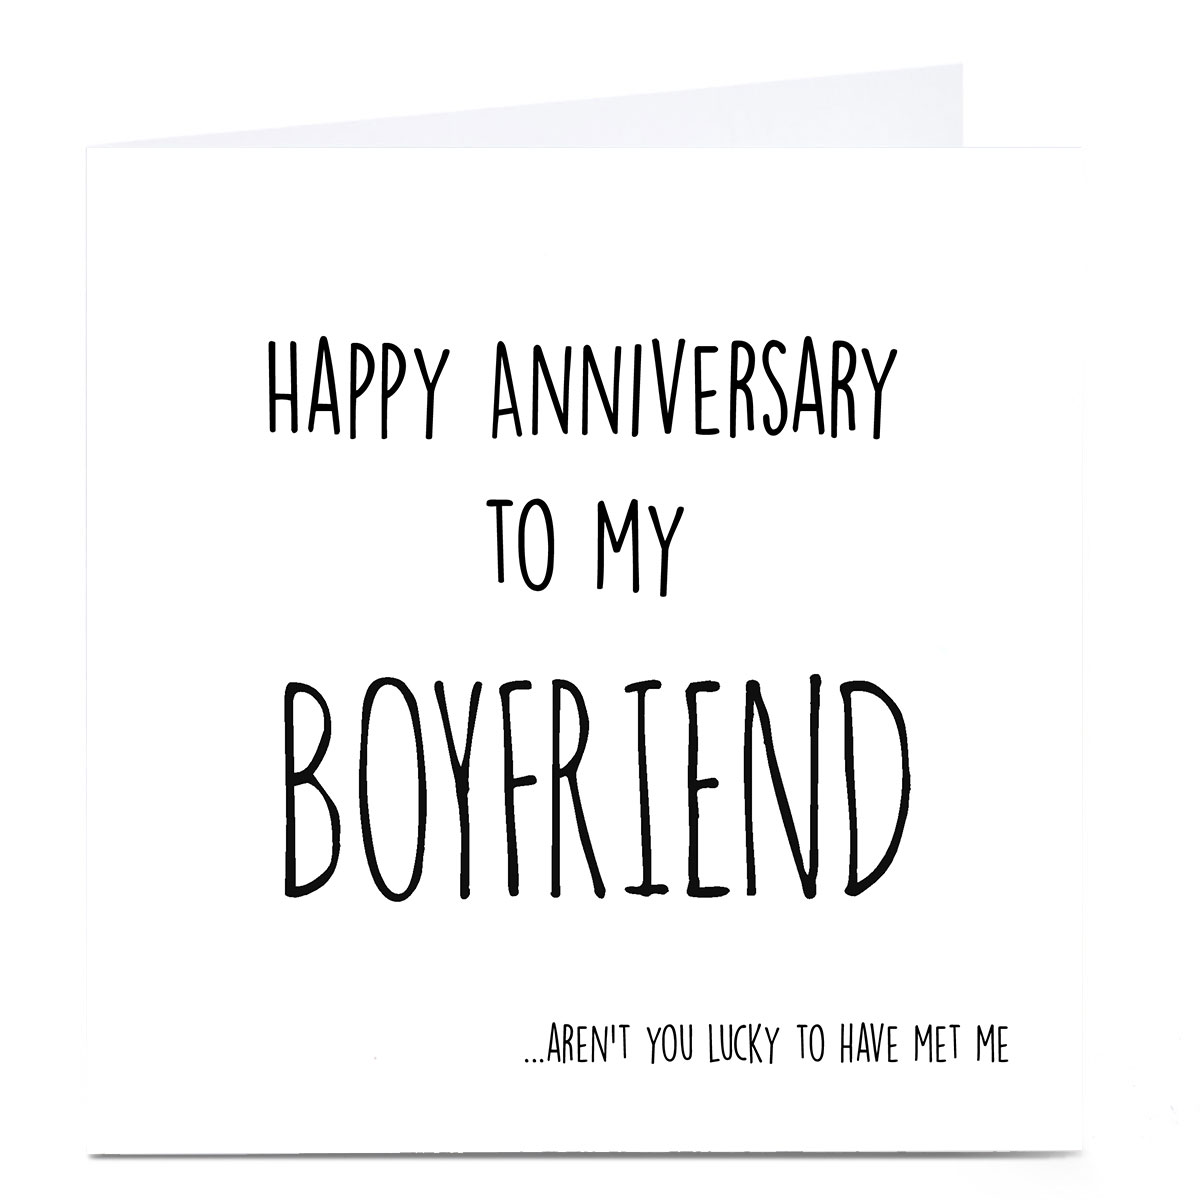 Personalised Anniversary Card - Lucky To Have Met Me, Boyfriend